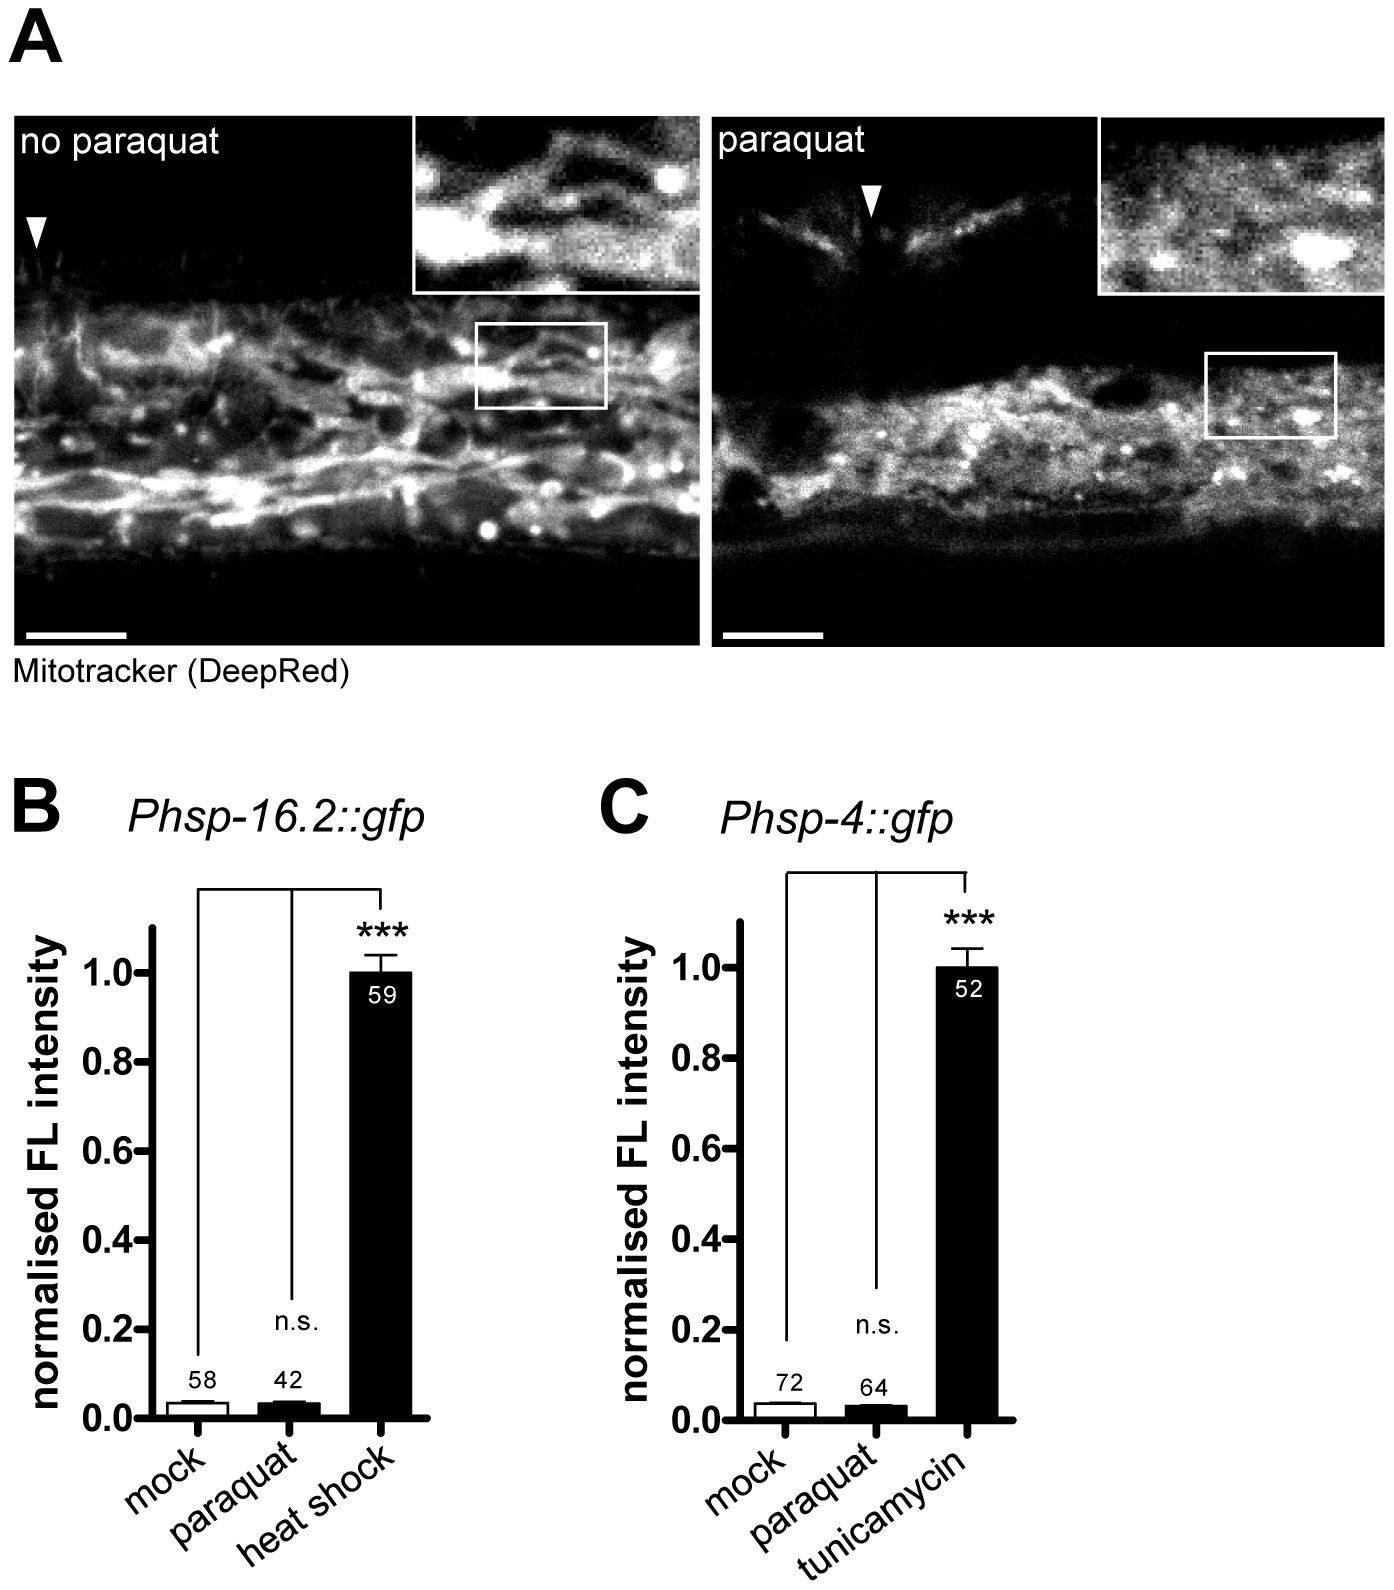 Paraquat affects mitochondrial morphology, but does not provoke the unfolded protein responses of the endoplasmatic reticulum (ER) or the cytosol.